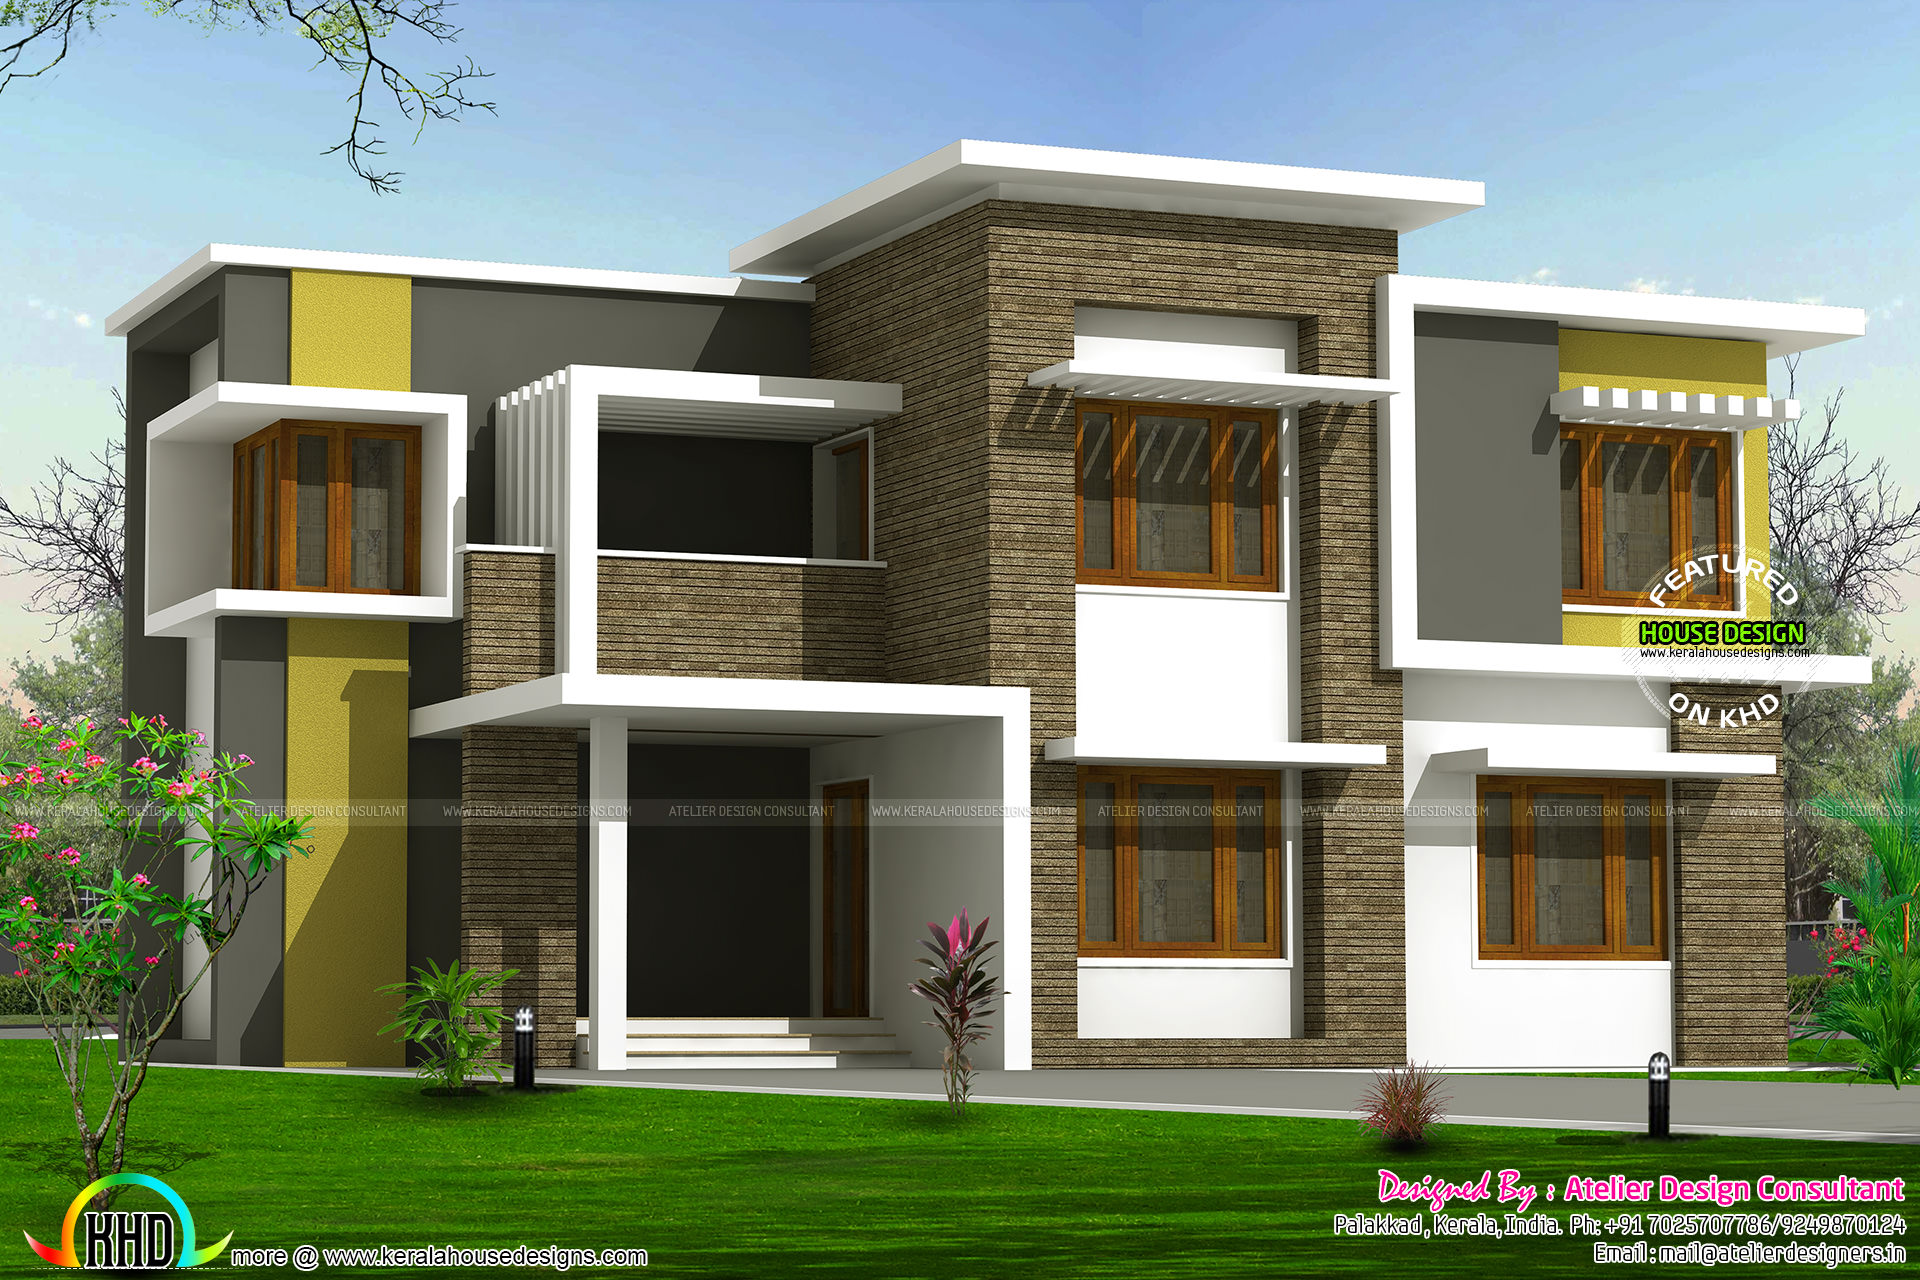 2300 sq ft box type home kerala home design and floor plans for Modern box type house design